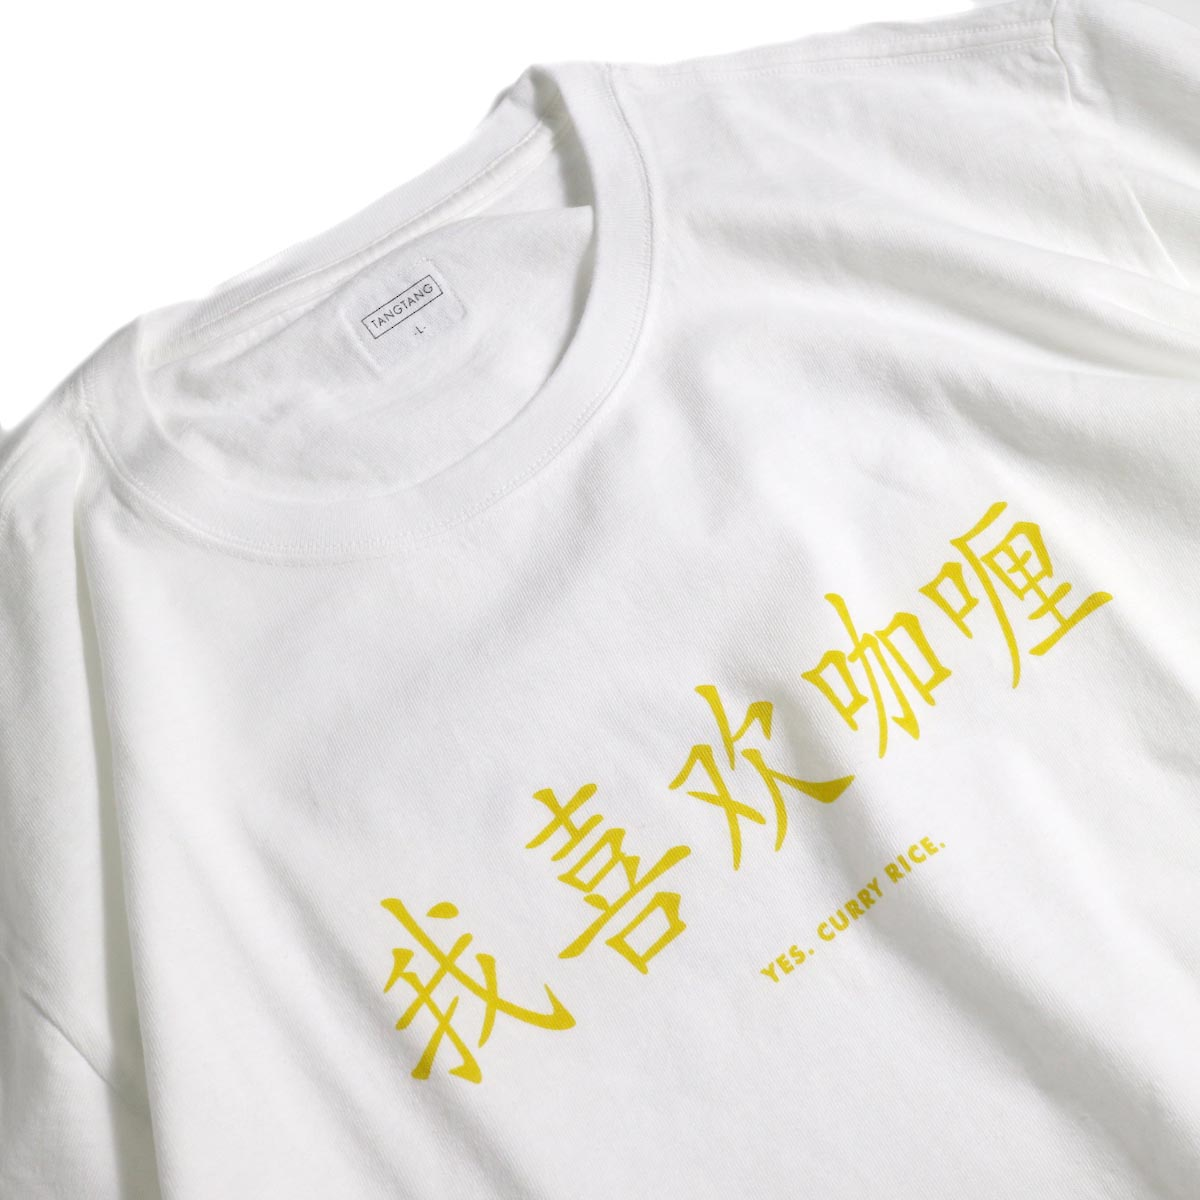 TANGTANG / CURRY -CHINESE (White)プリント